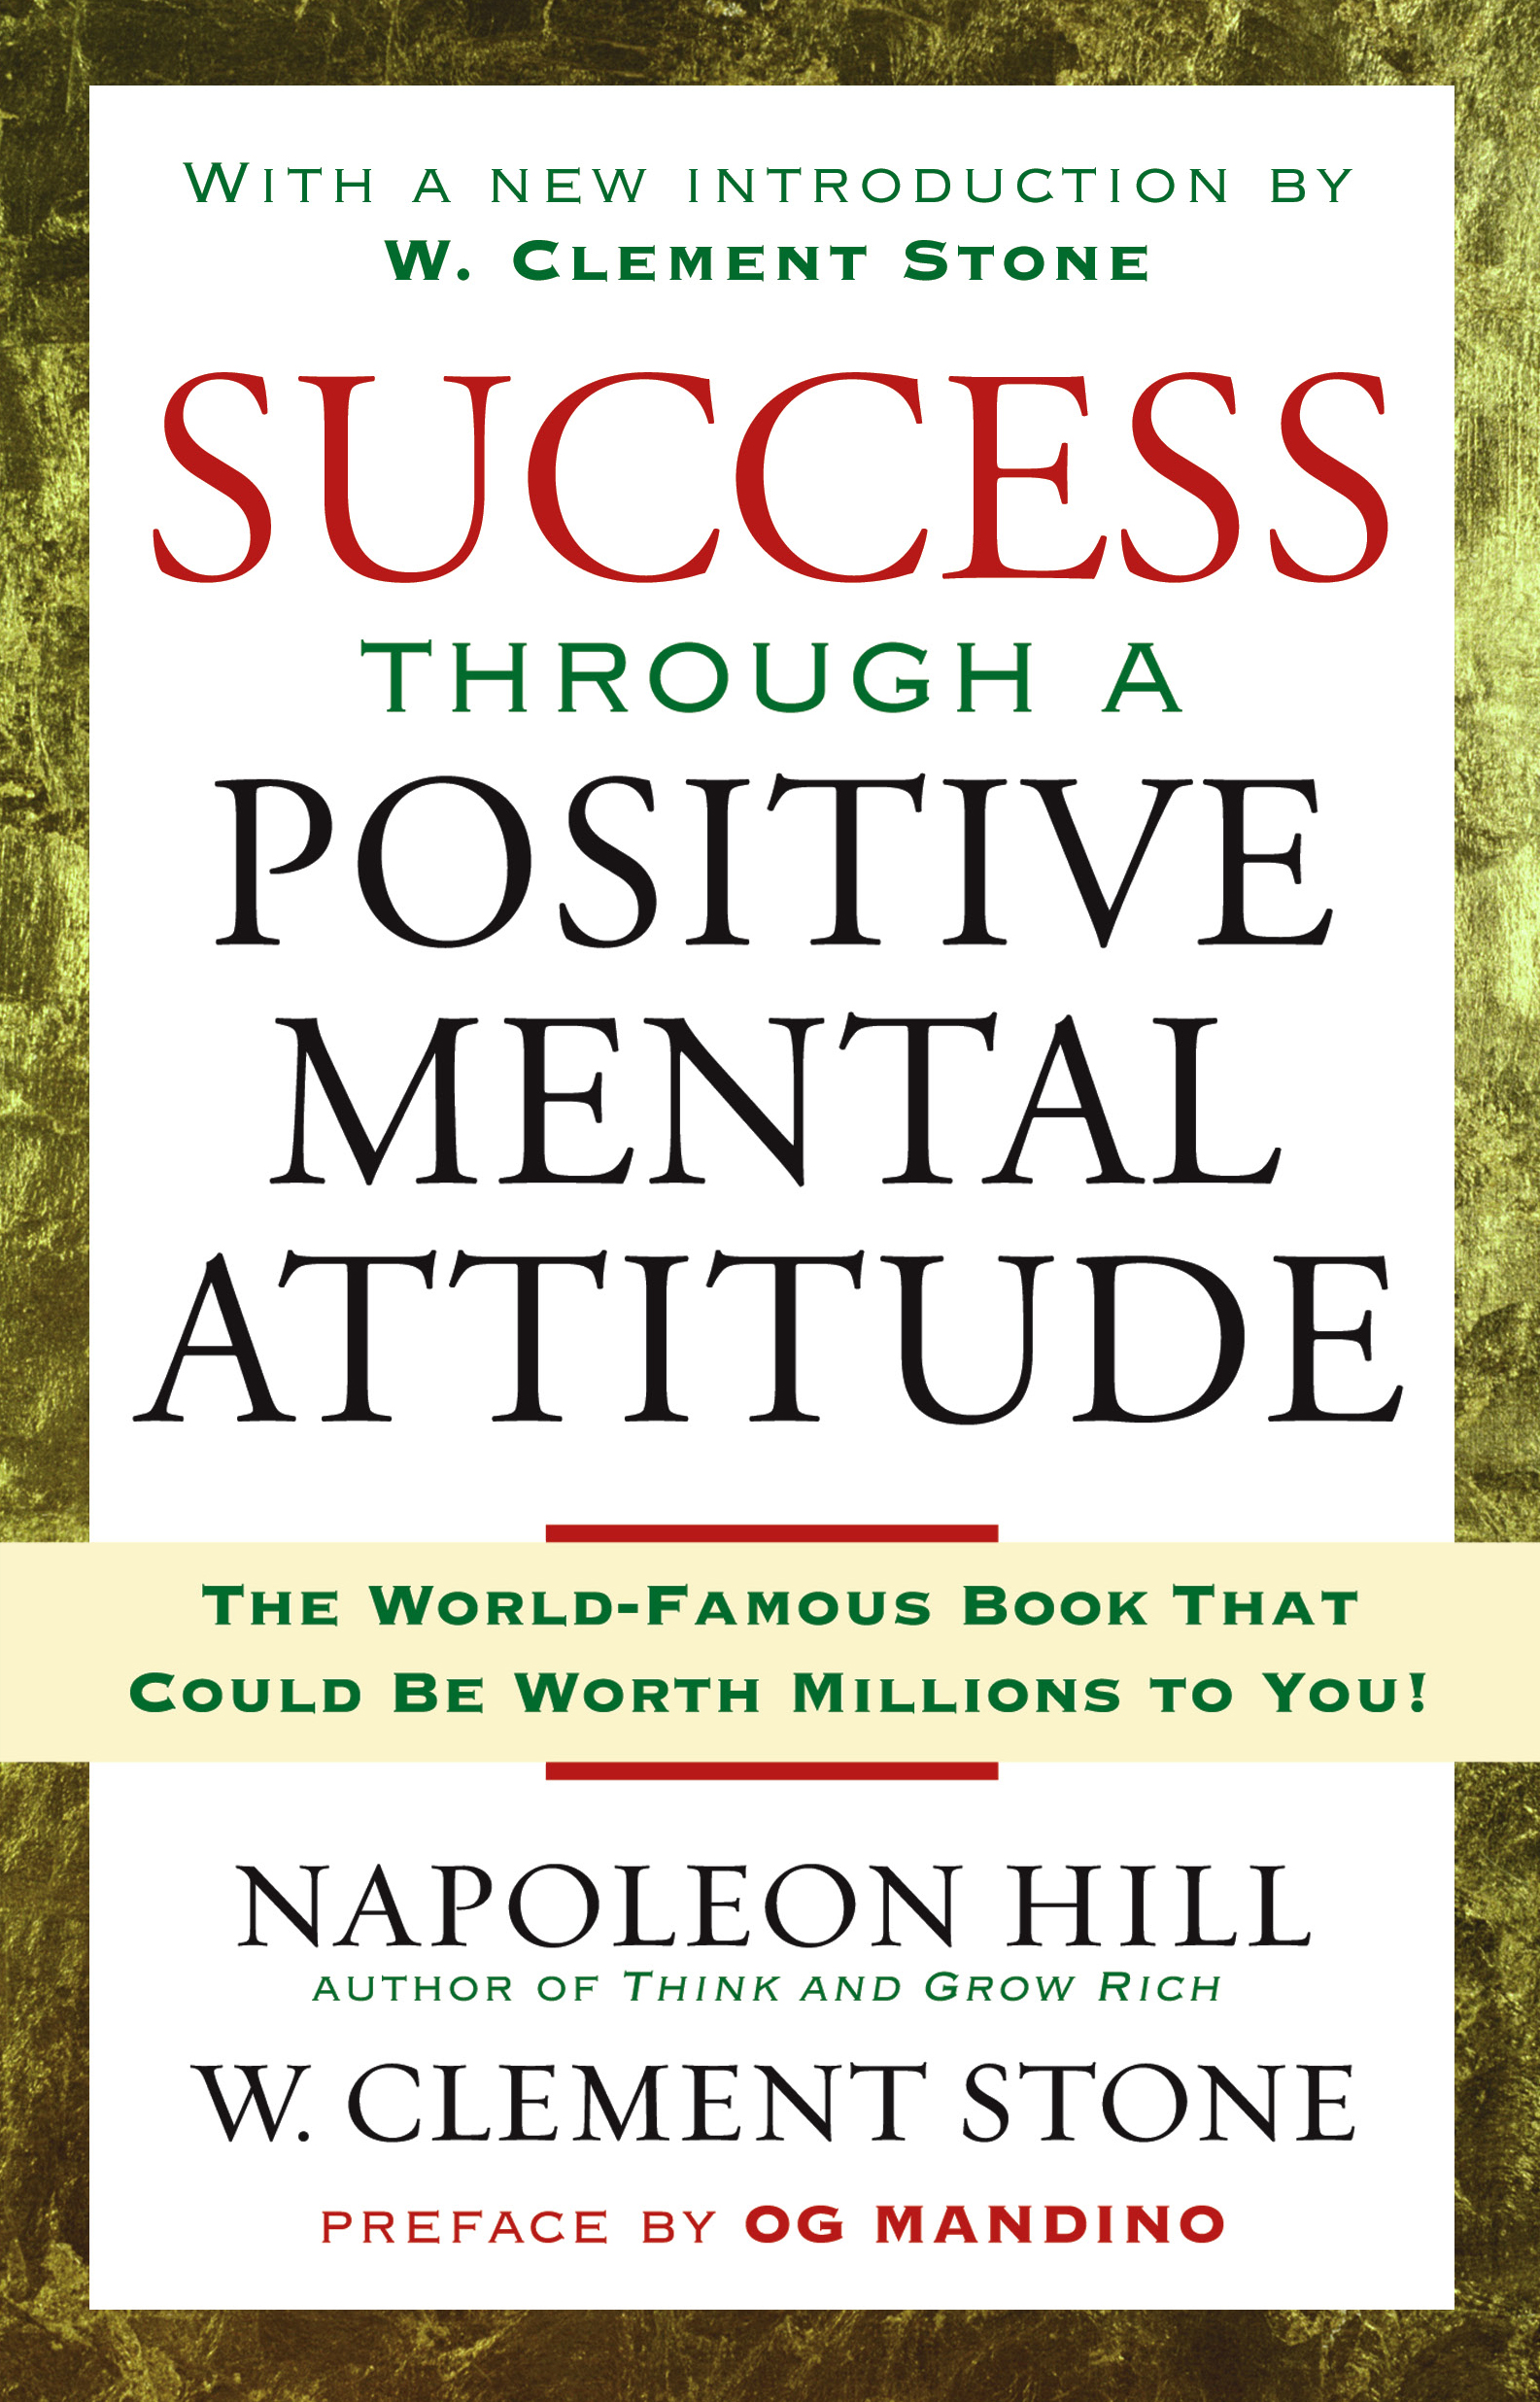 success through a positive mental attitude book by napoleon hill book cover image jpg success through a positive mental attitude